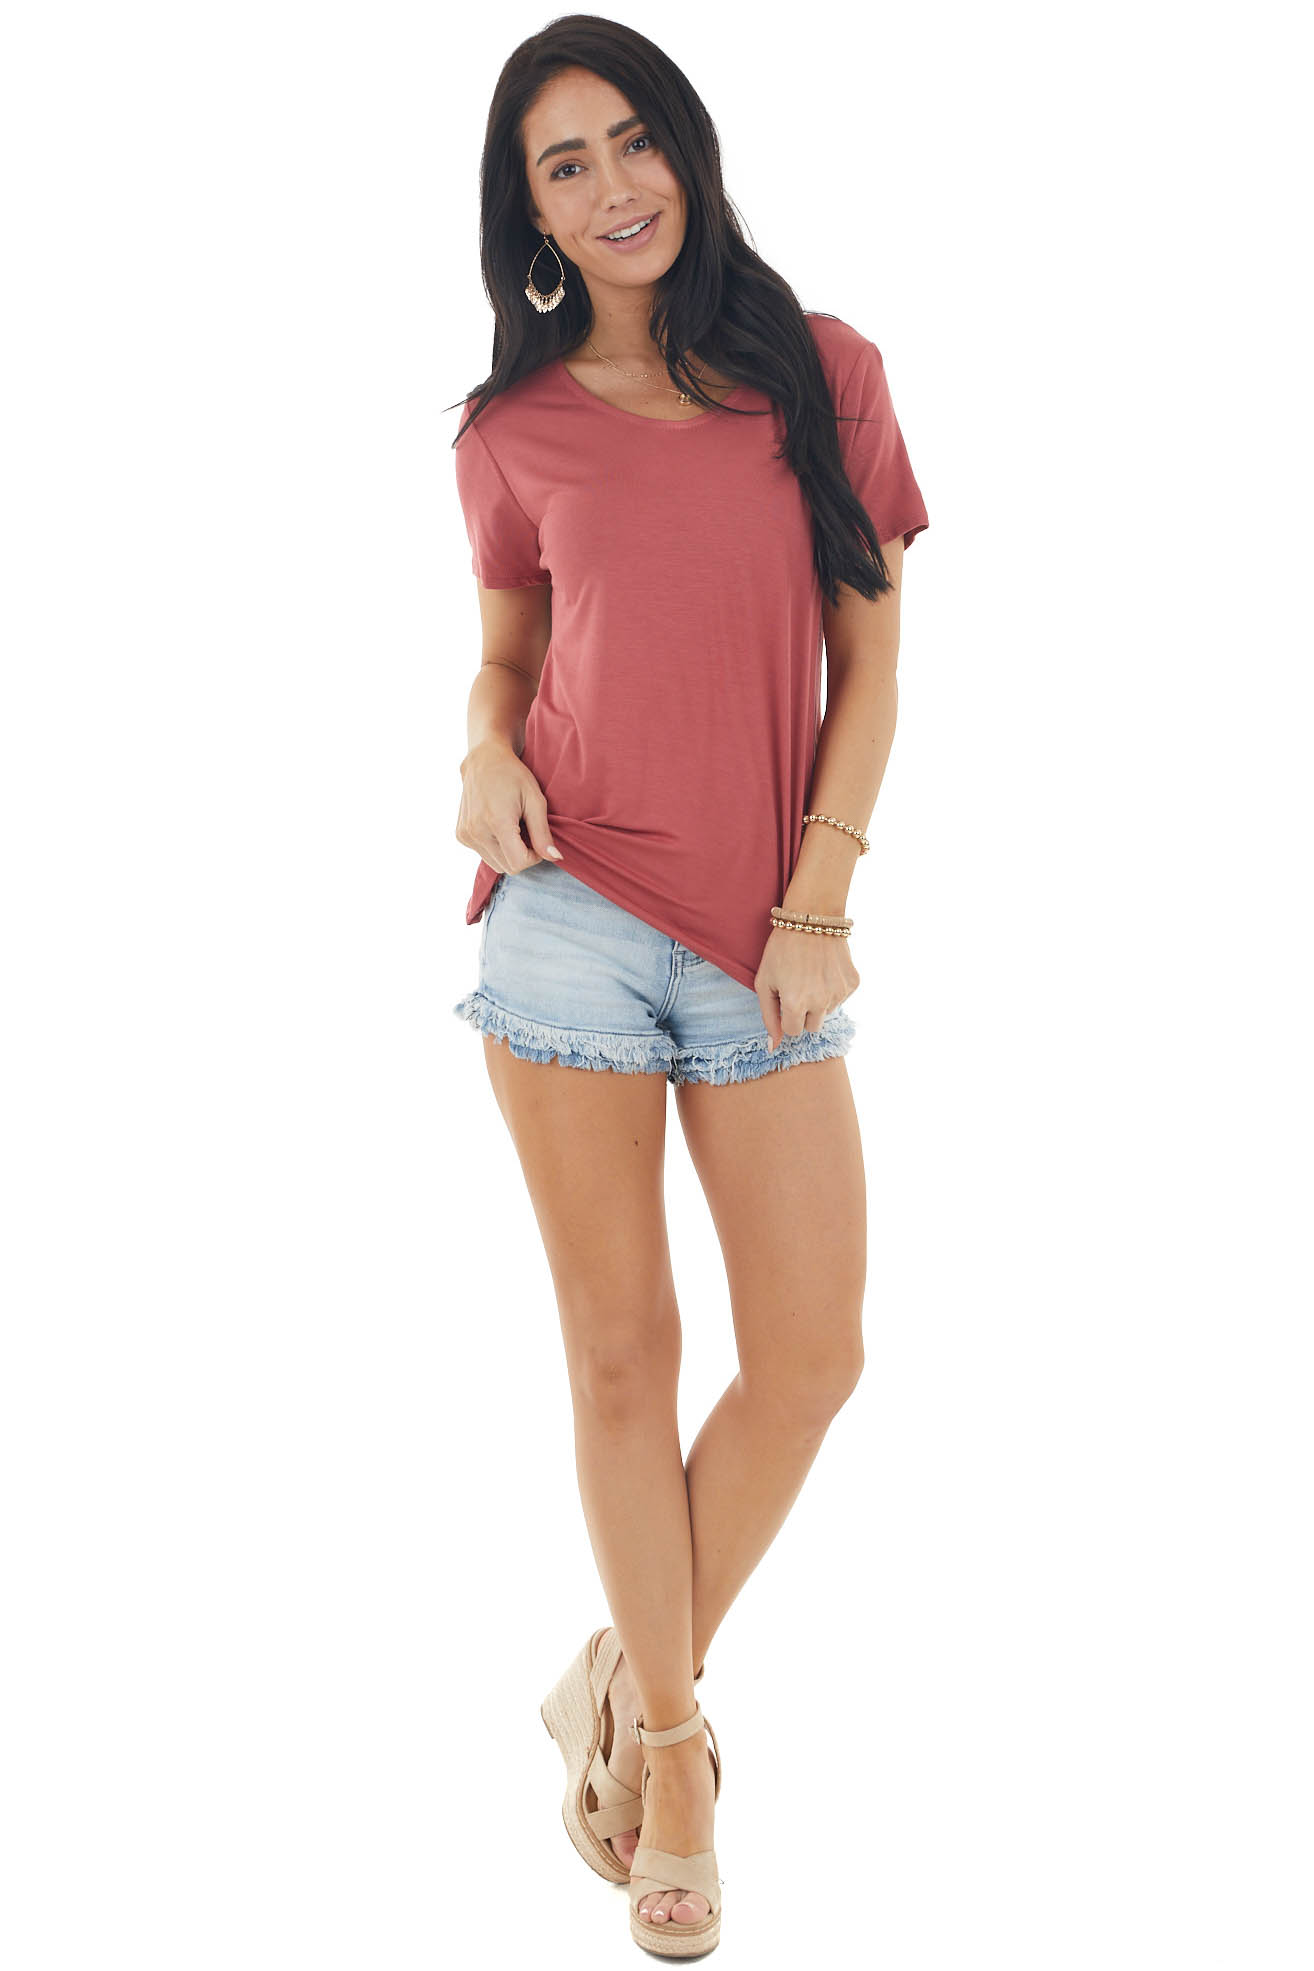 Hibiscus Short Sleeve Knit Top with Caged Back Detail